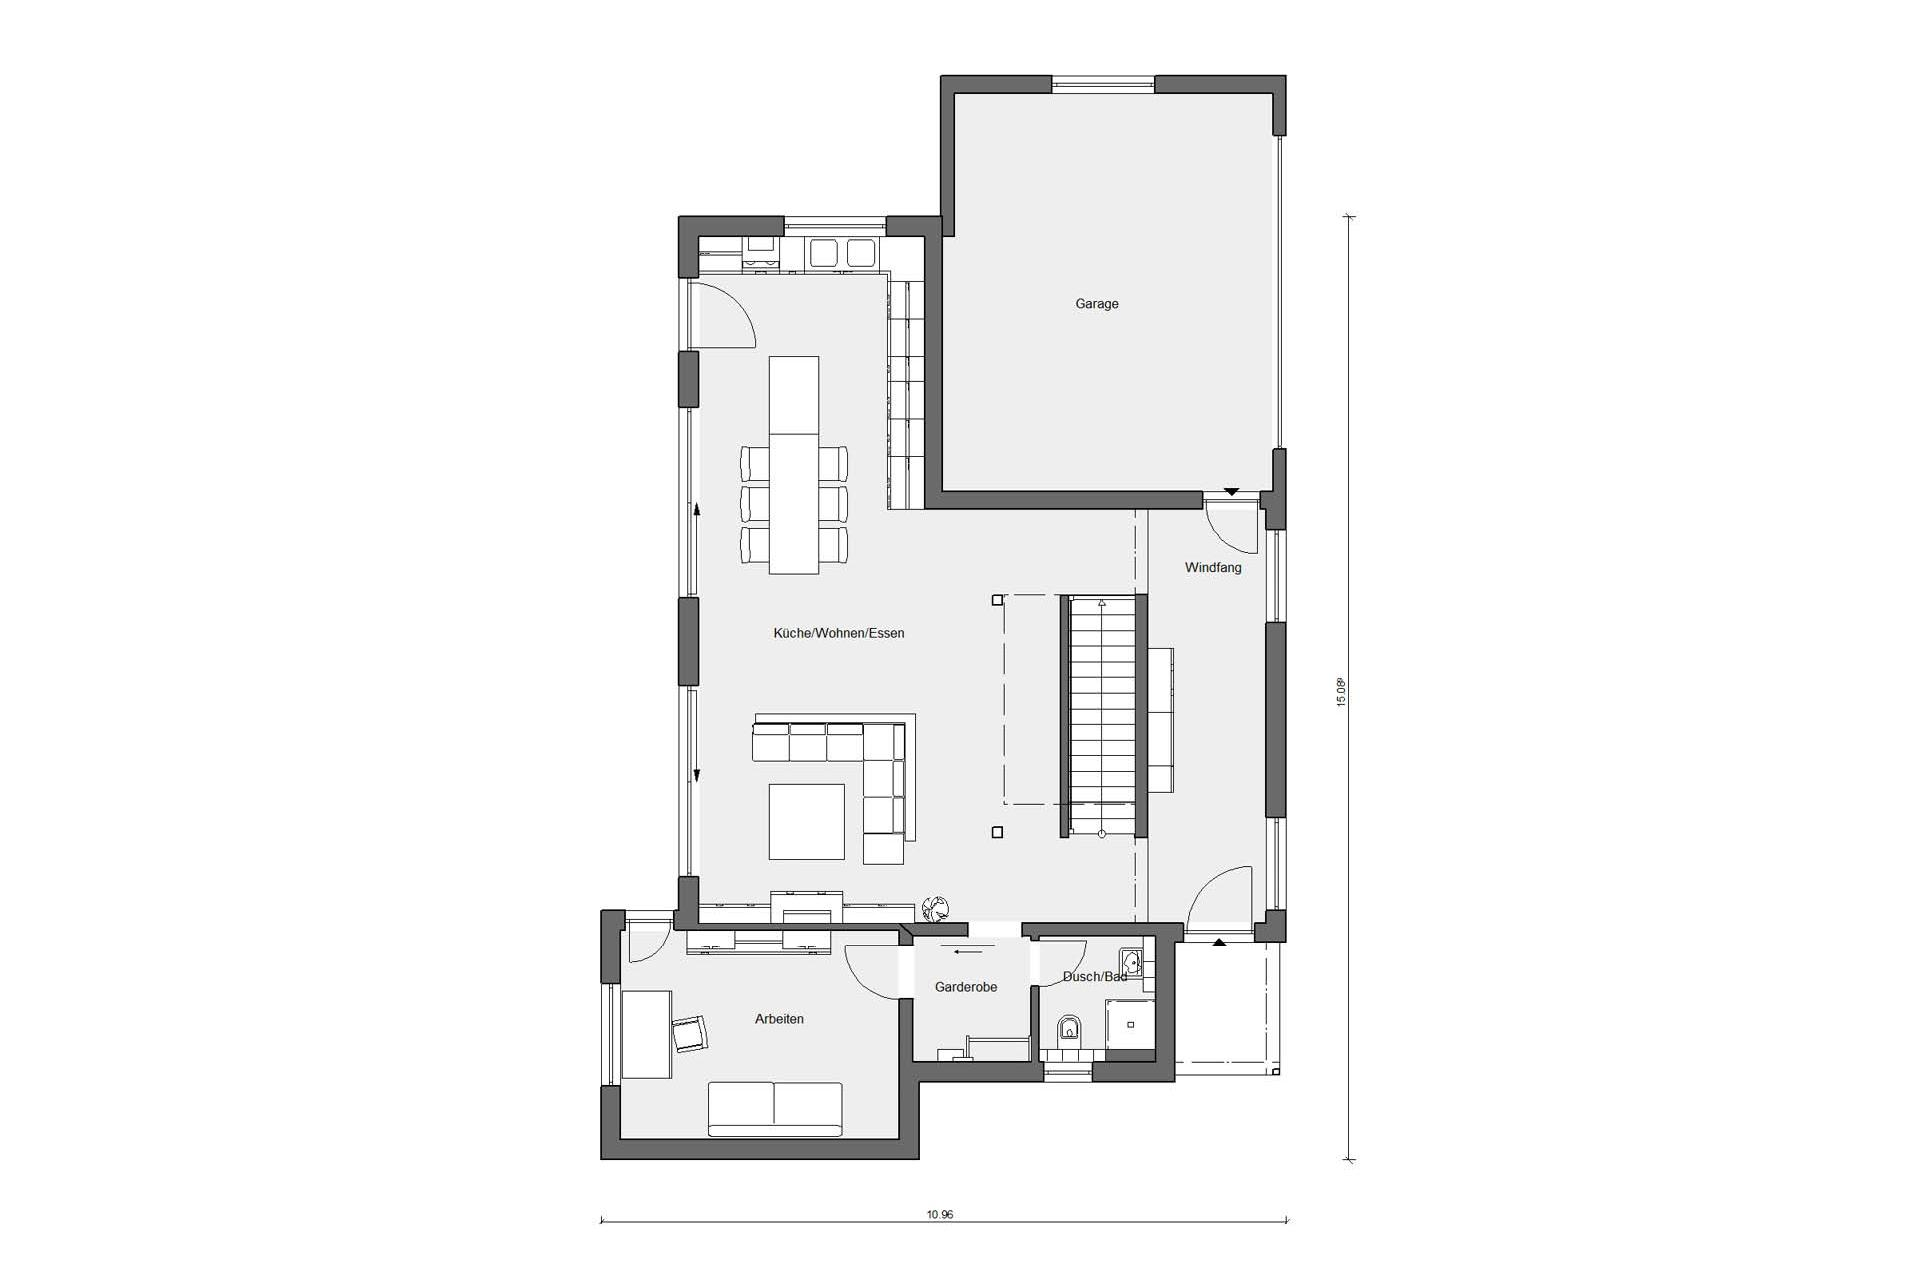 Floor plan ground floor Bauhaus style with flat roof E 20-207.1